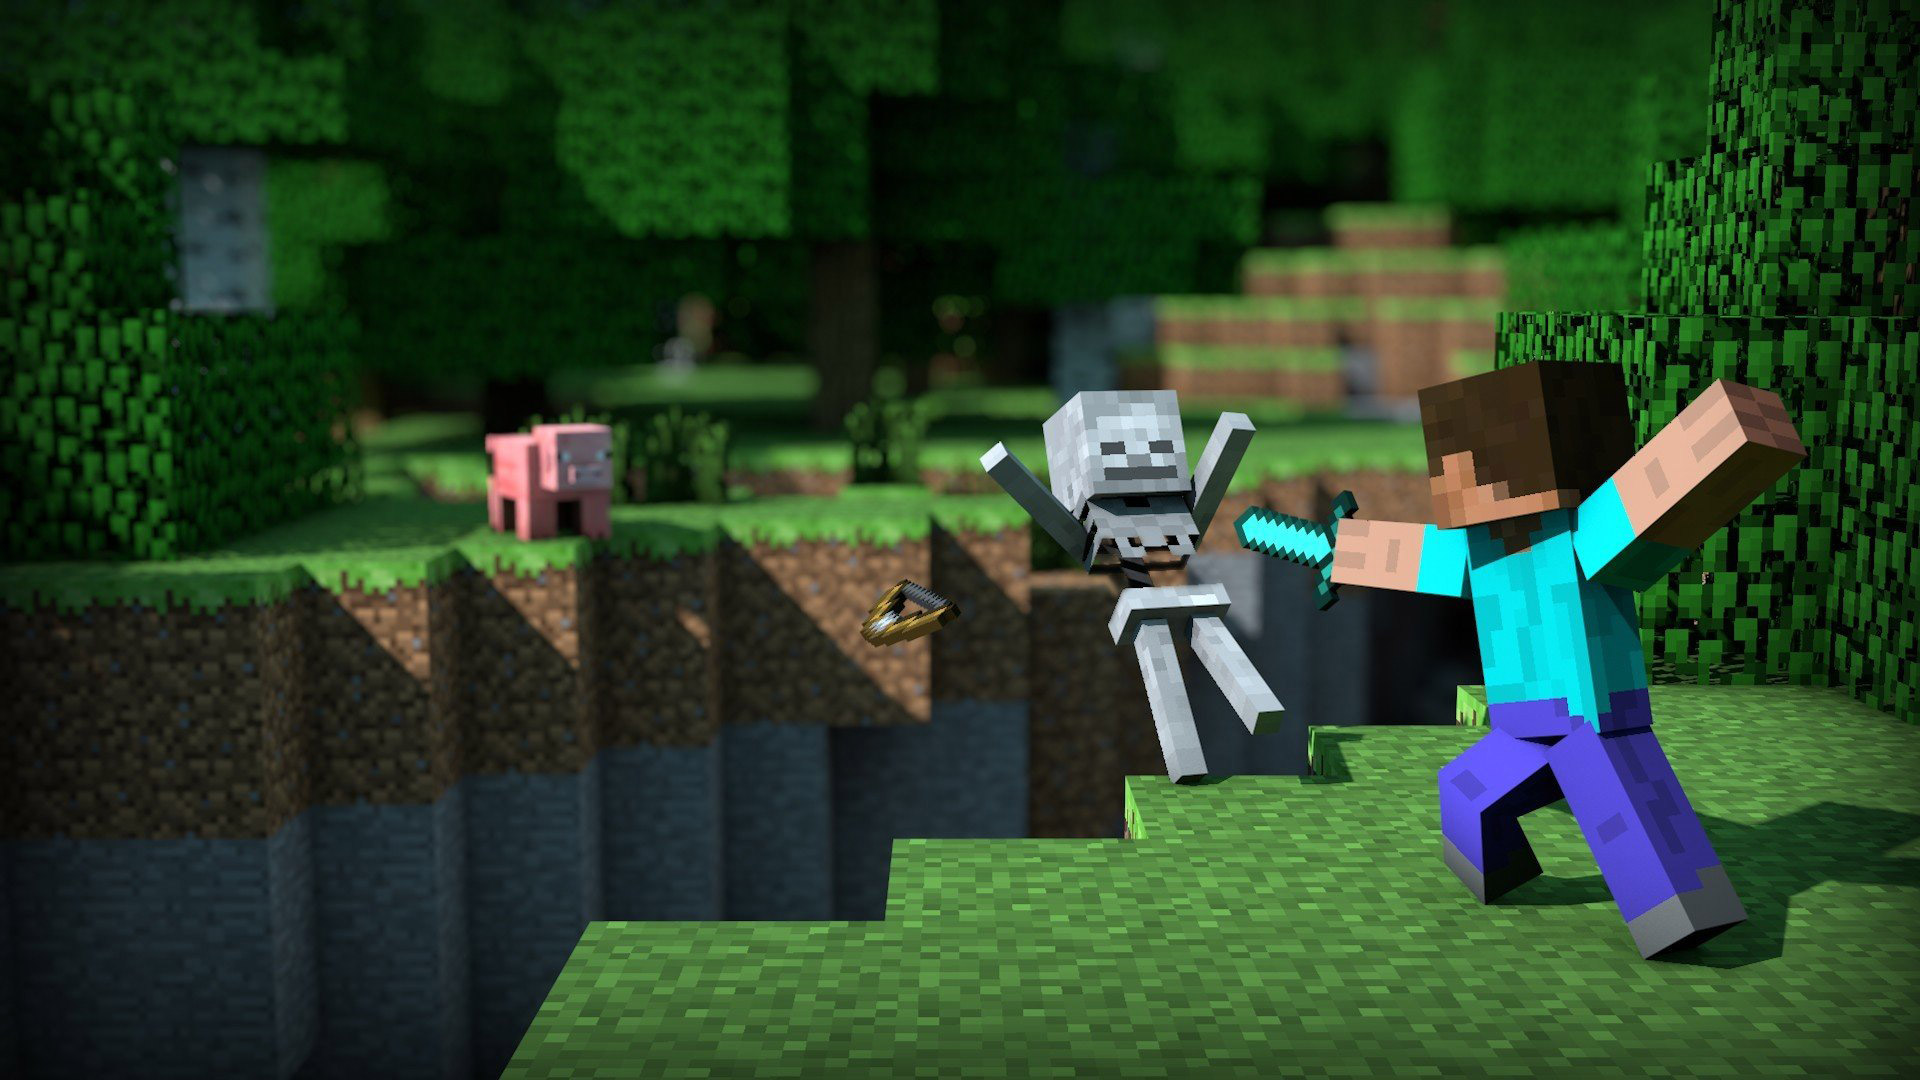 Minecraft wallpaper 4